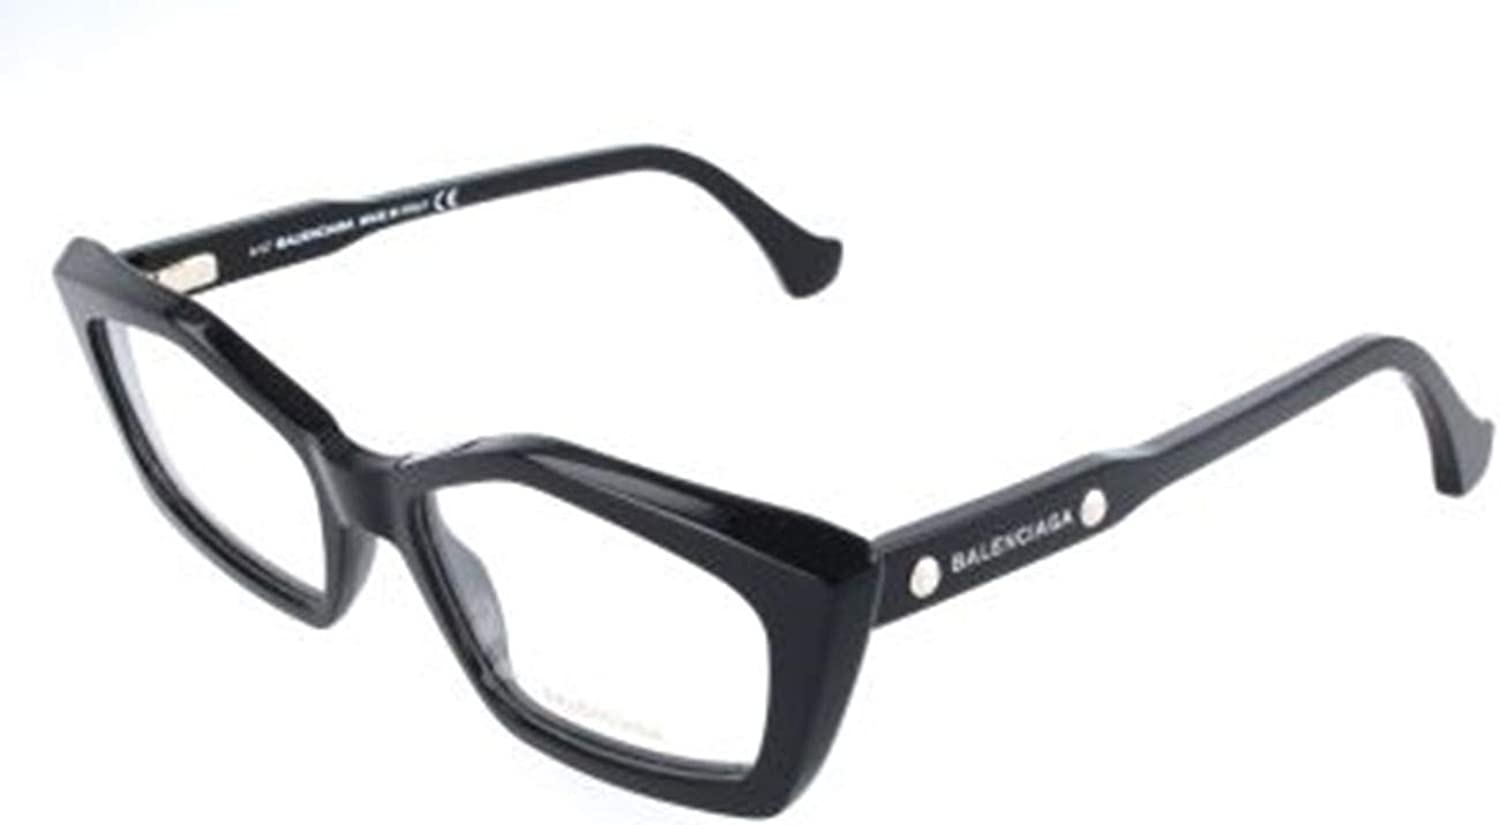 Balenciaga  BA5043, Geometric, acetate, women, BLACK(001 B), 52 17 140